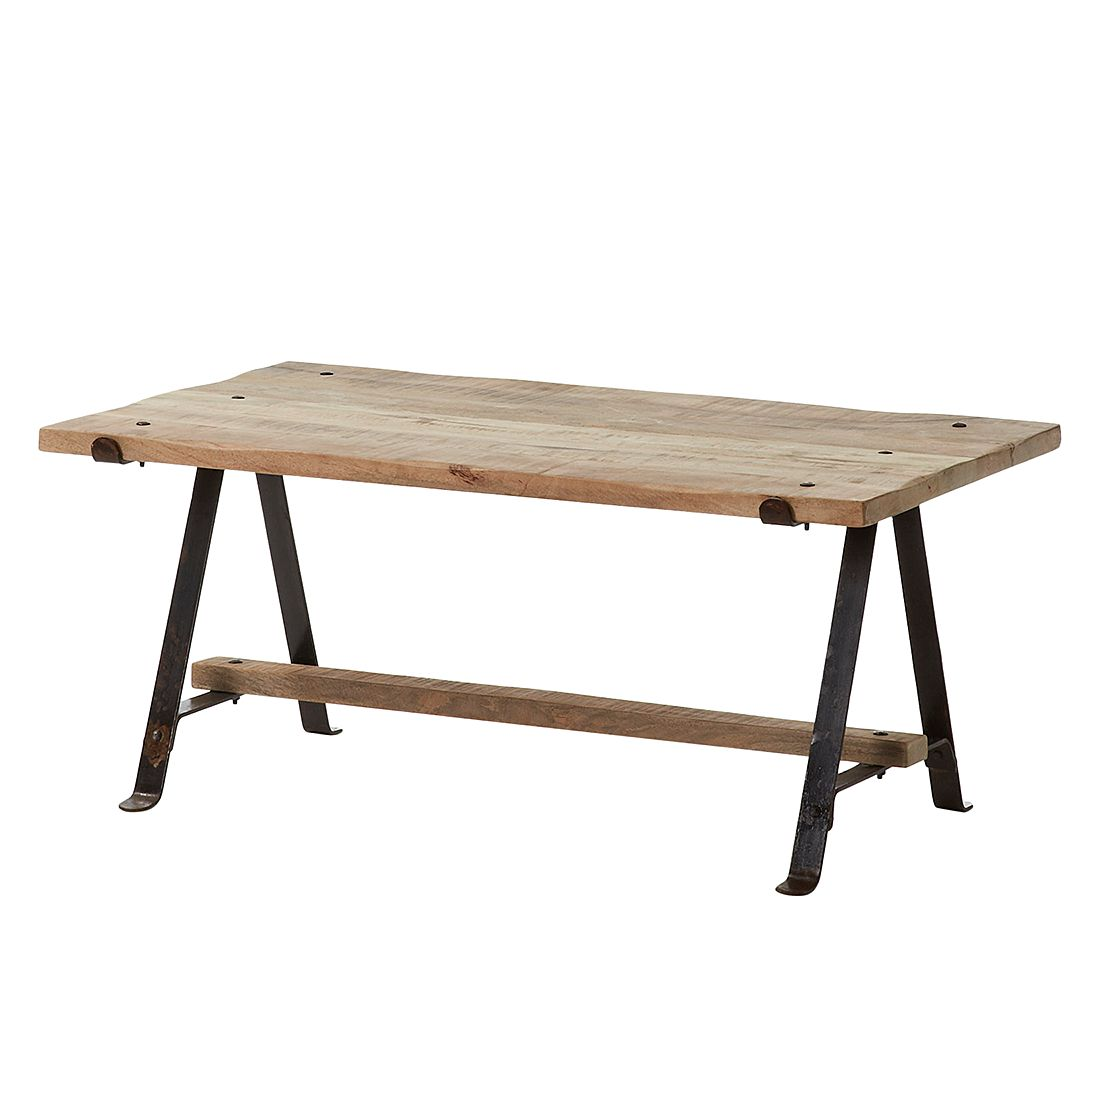 Table basse Sindal - Manguier massif, ars manufacti